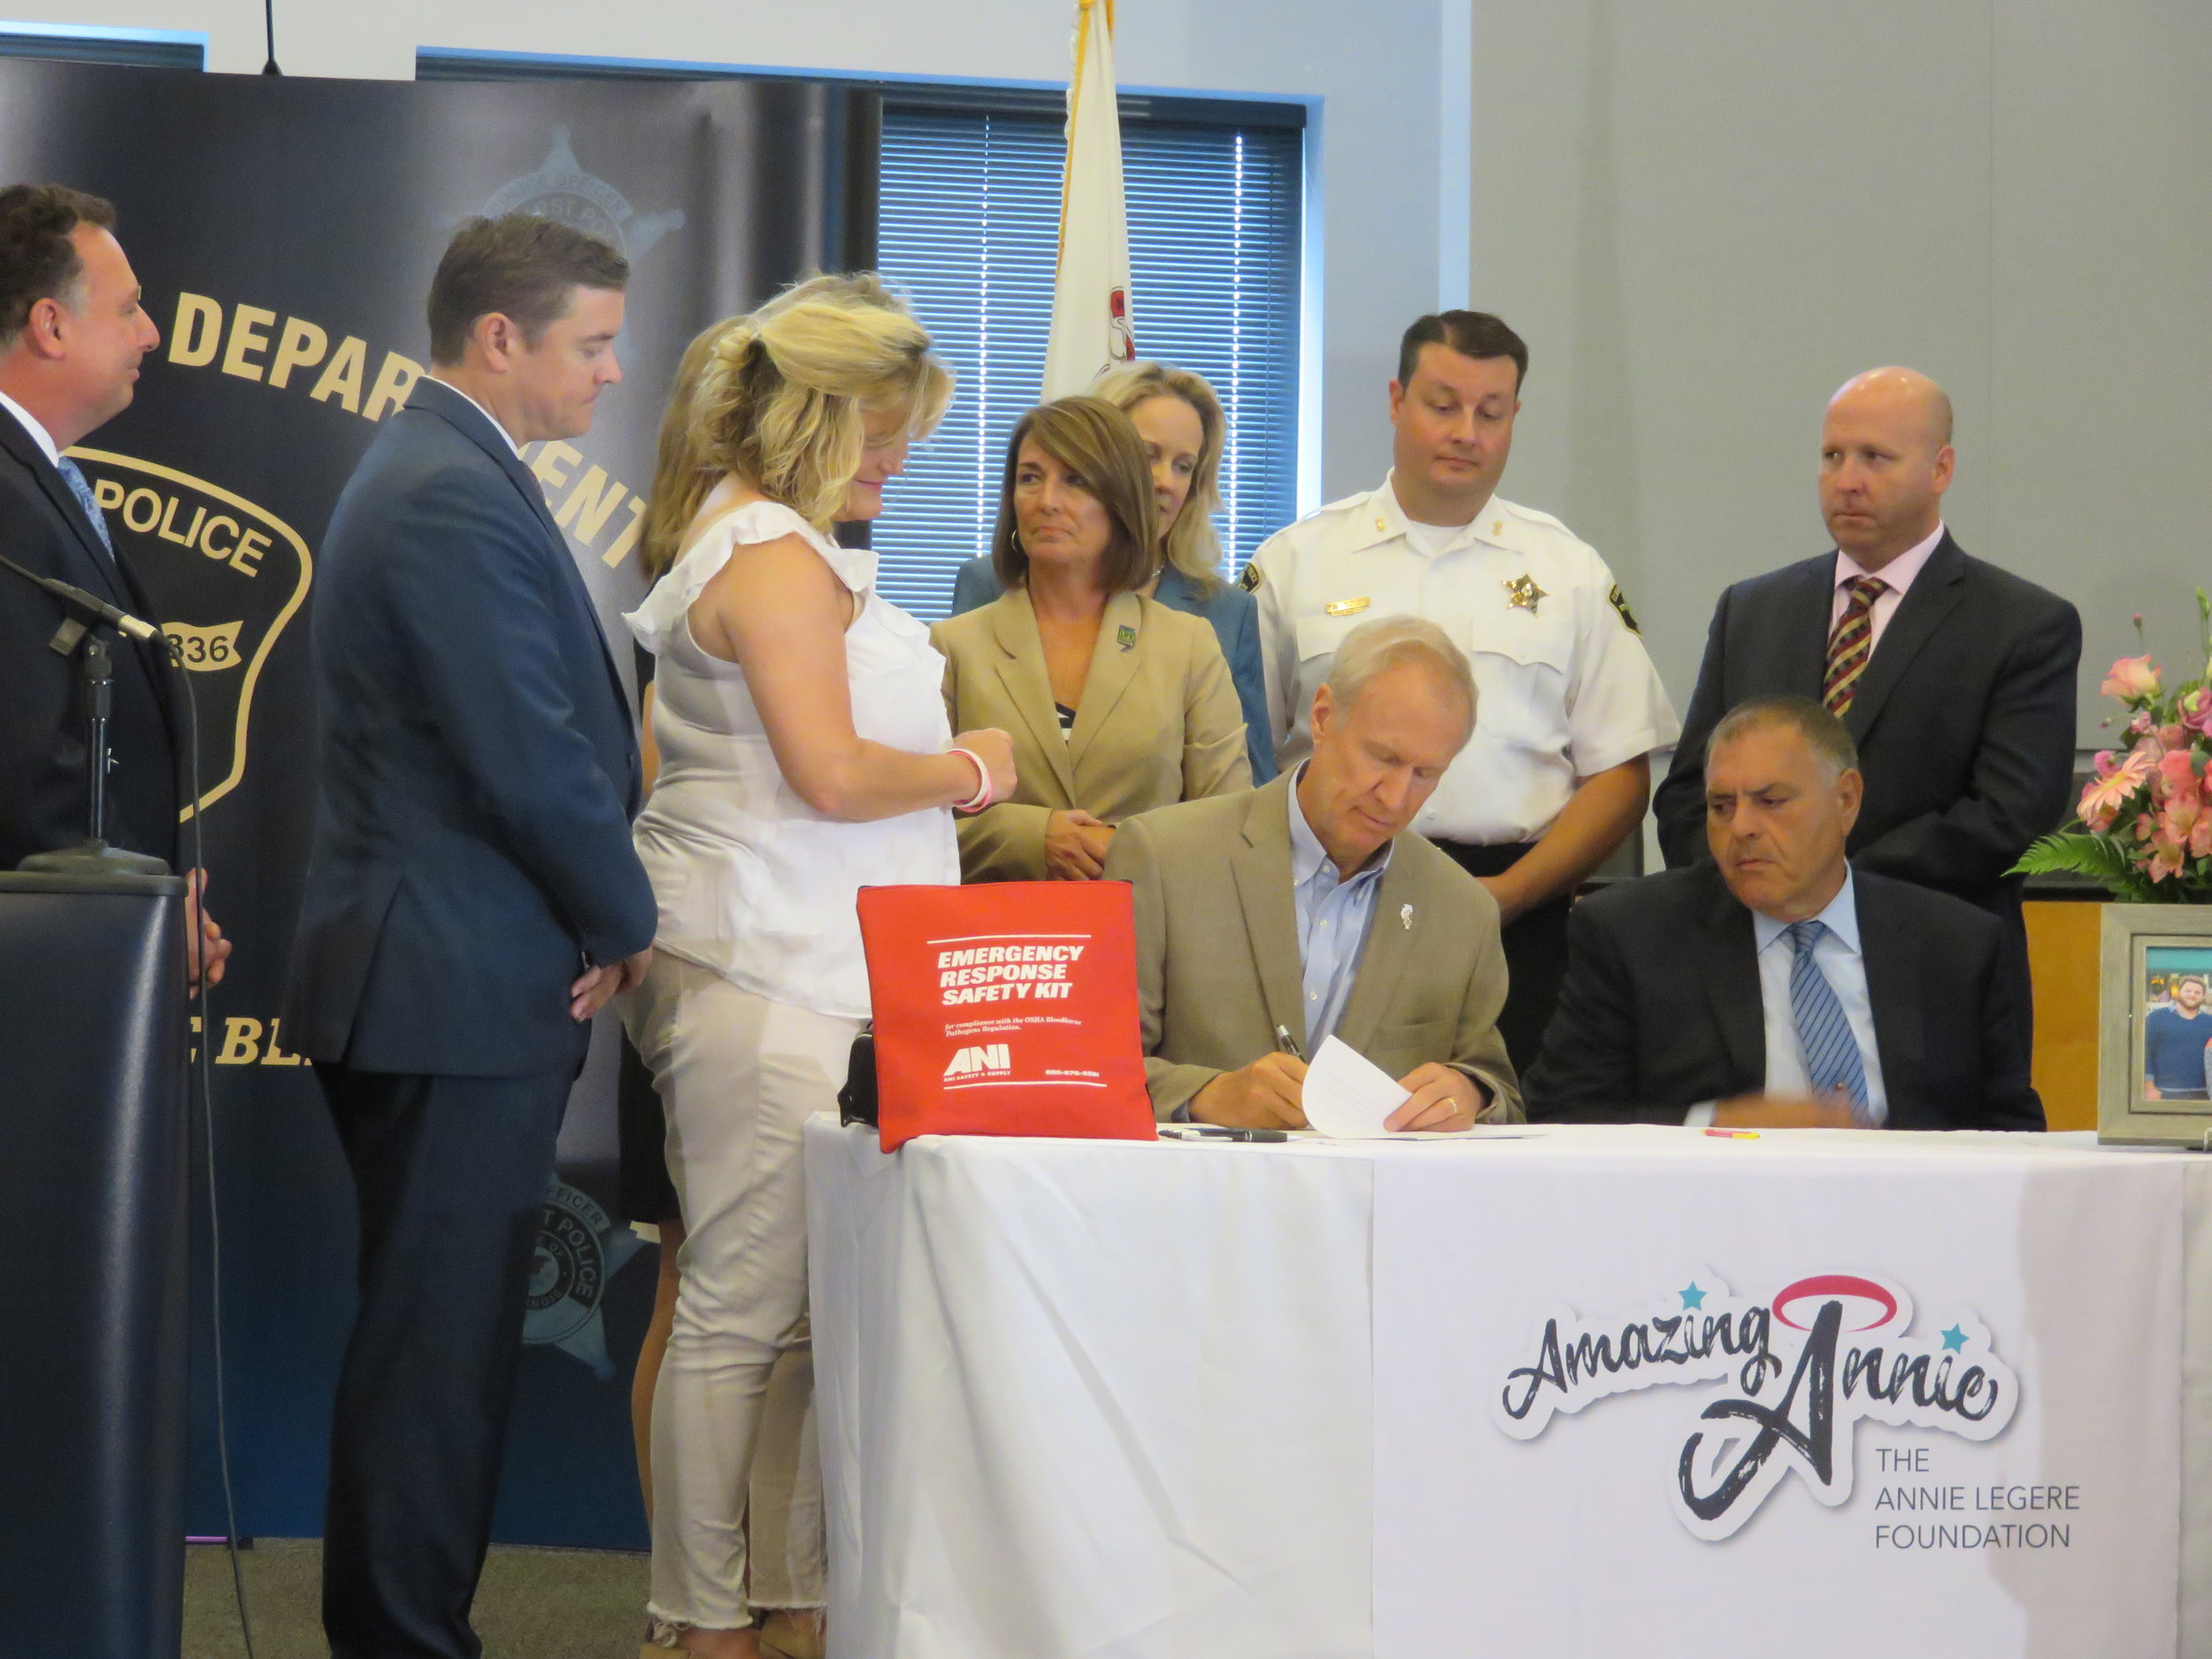 Illinois Governor Bruce Rauner, Shelly LeGere, Senator Chris Nybo, Pete DeCianni, Representative Deb Conroy